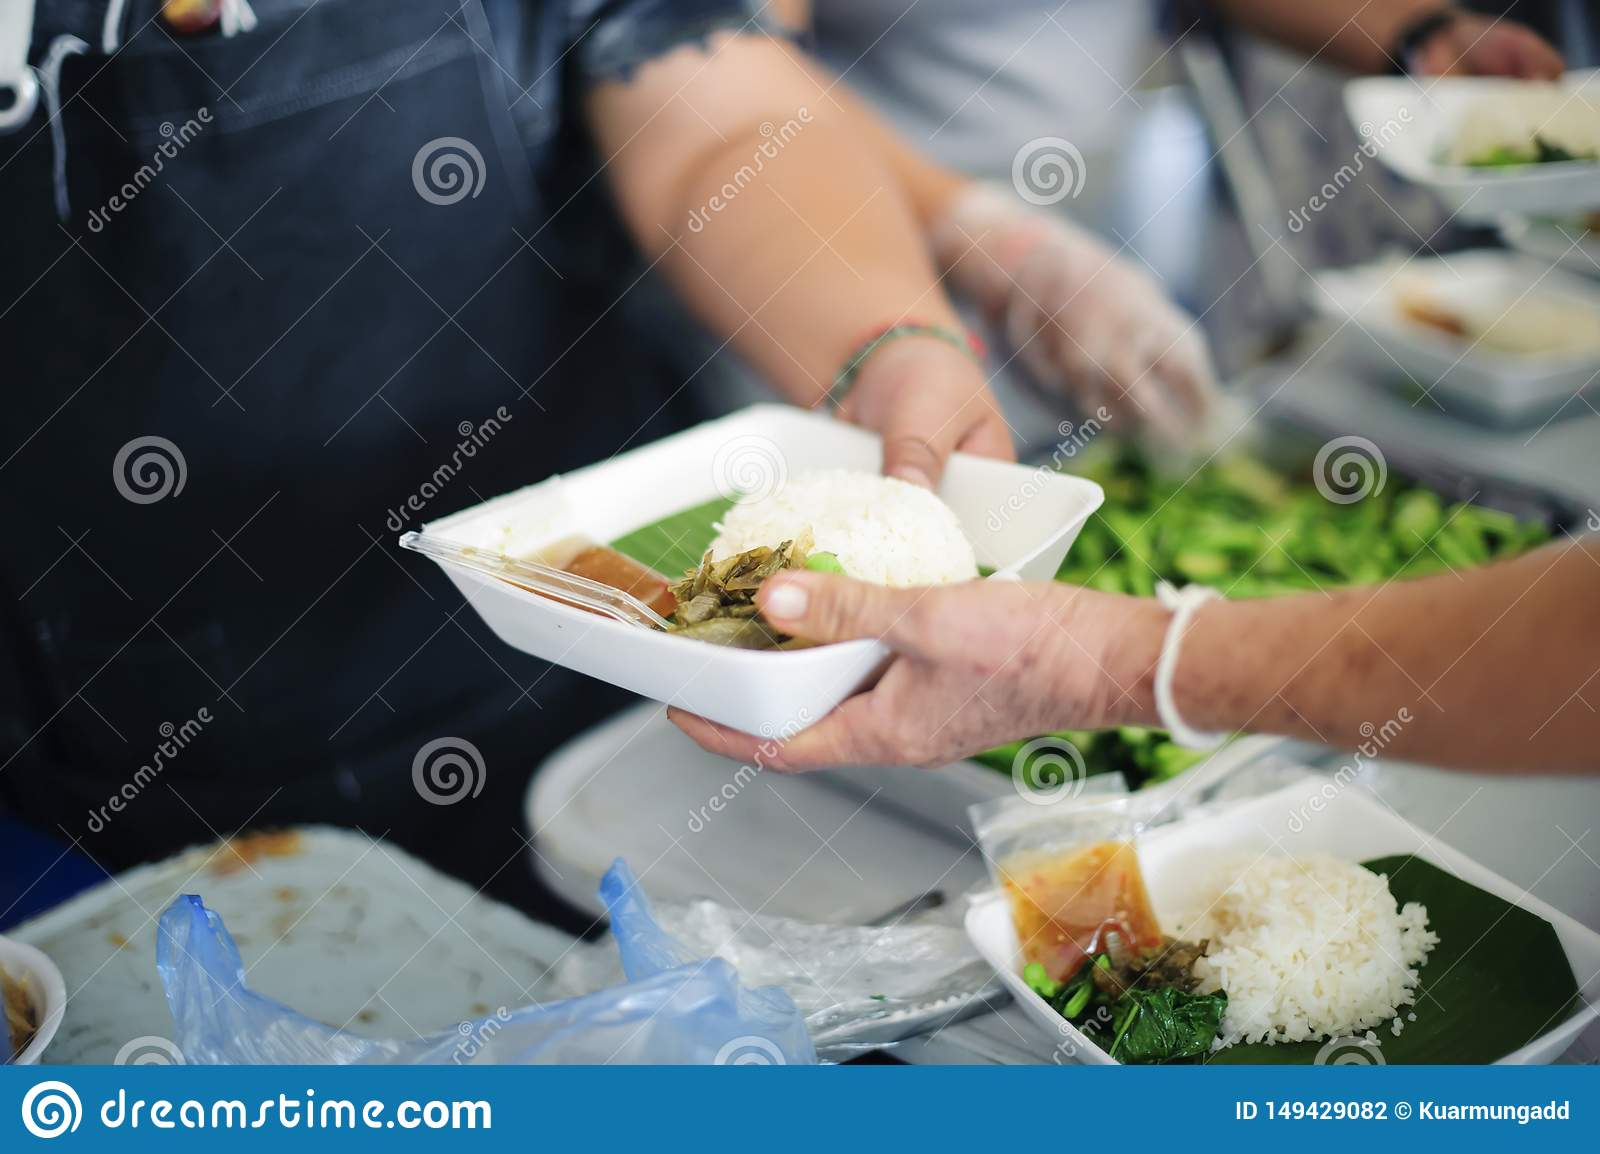 Social Problems of Poverty Helped by Feeding : Concepts problems of life the poor : Volunteers Share Food to the Poor to Relieve